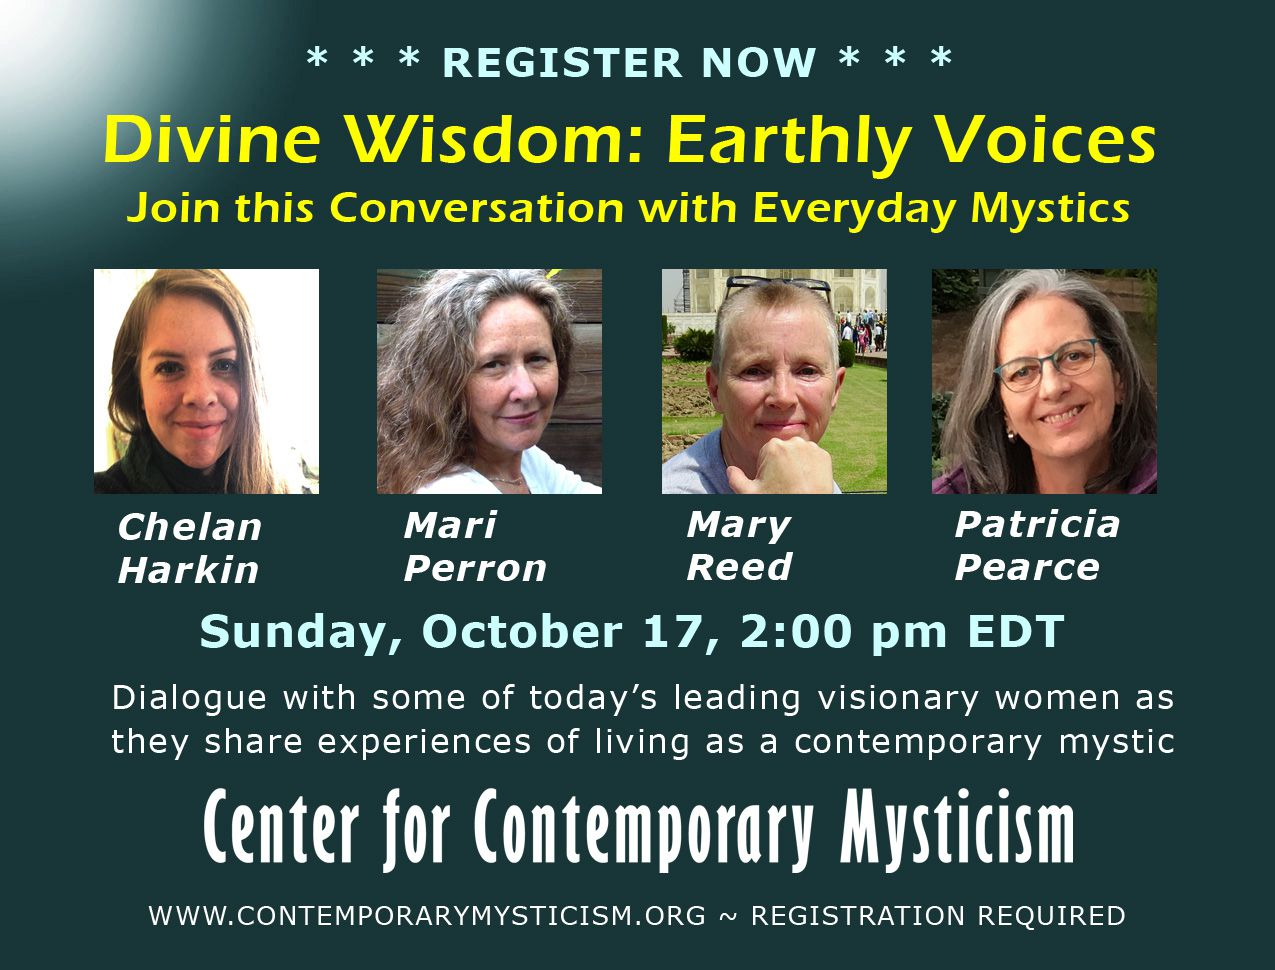 Divine Wisdom Earthly Voices Event